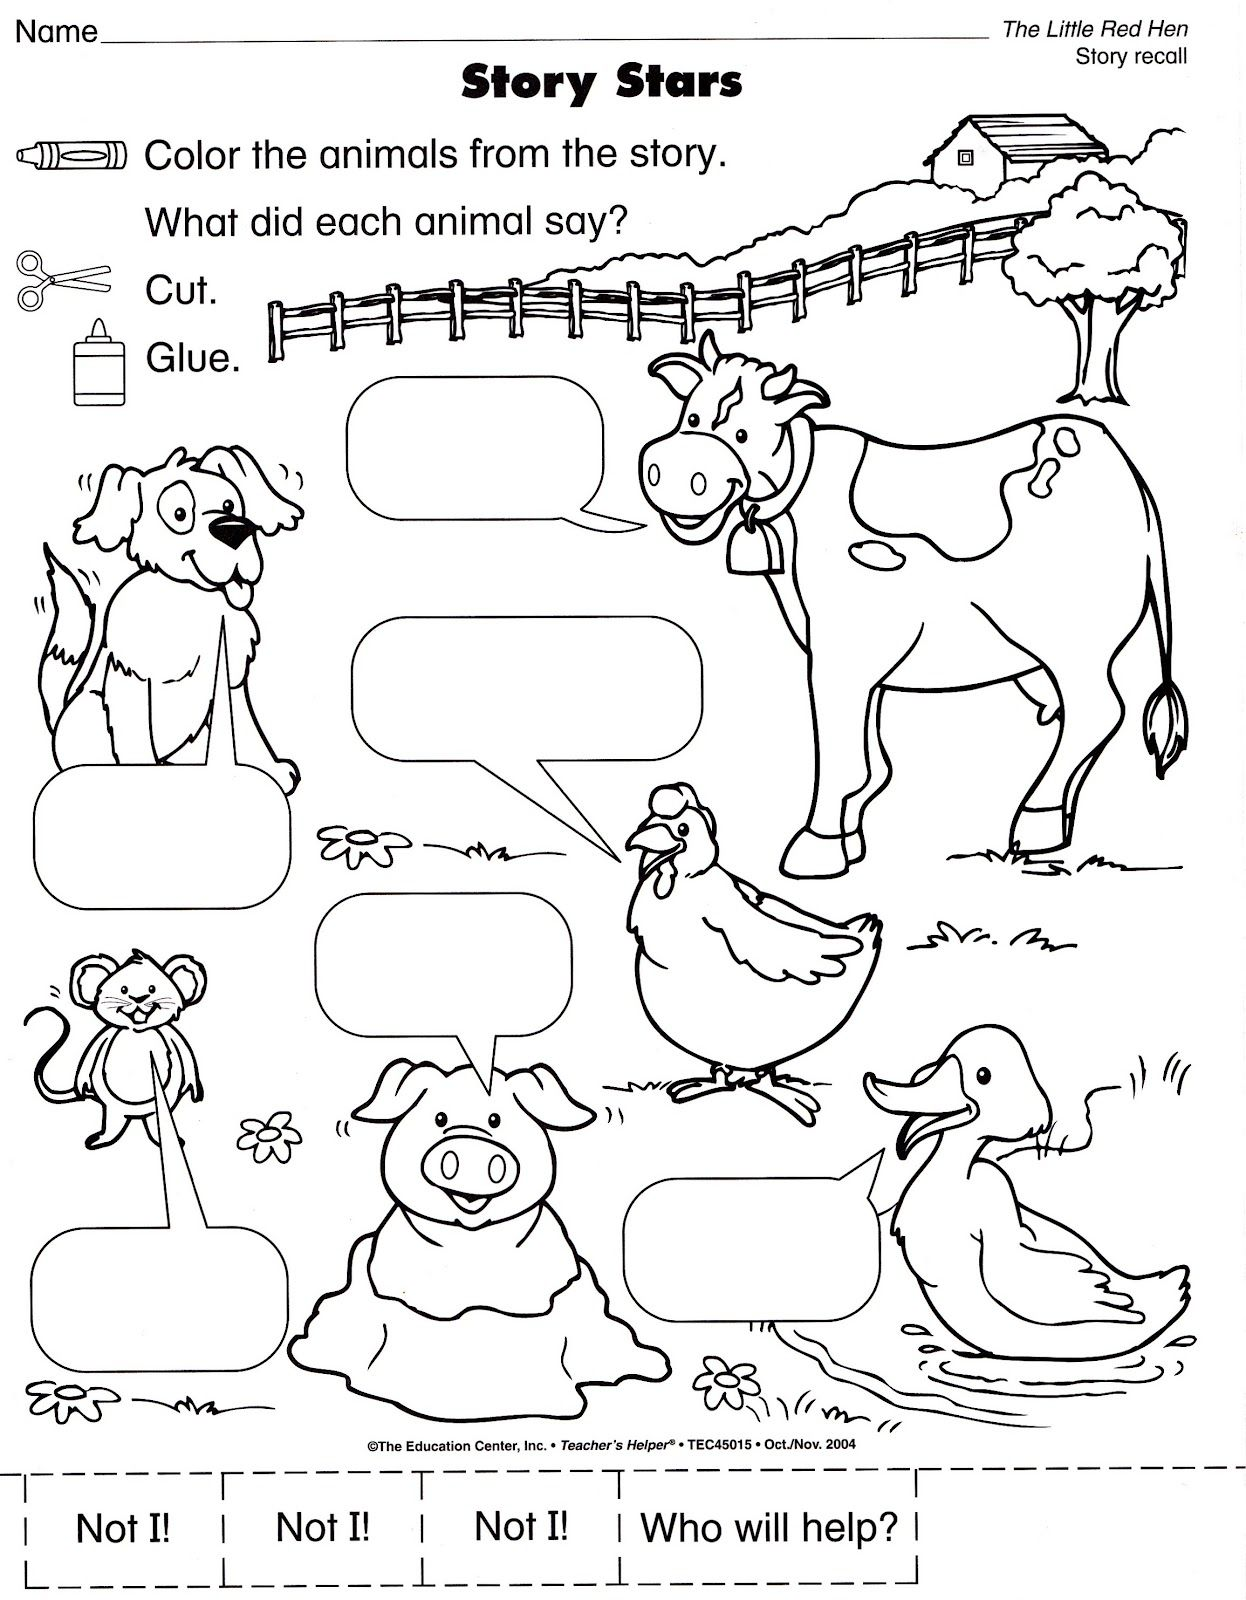 Squish Preschool Ideas Cows Sheep Amp Horses Oh My